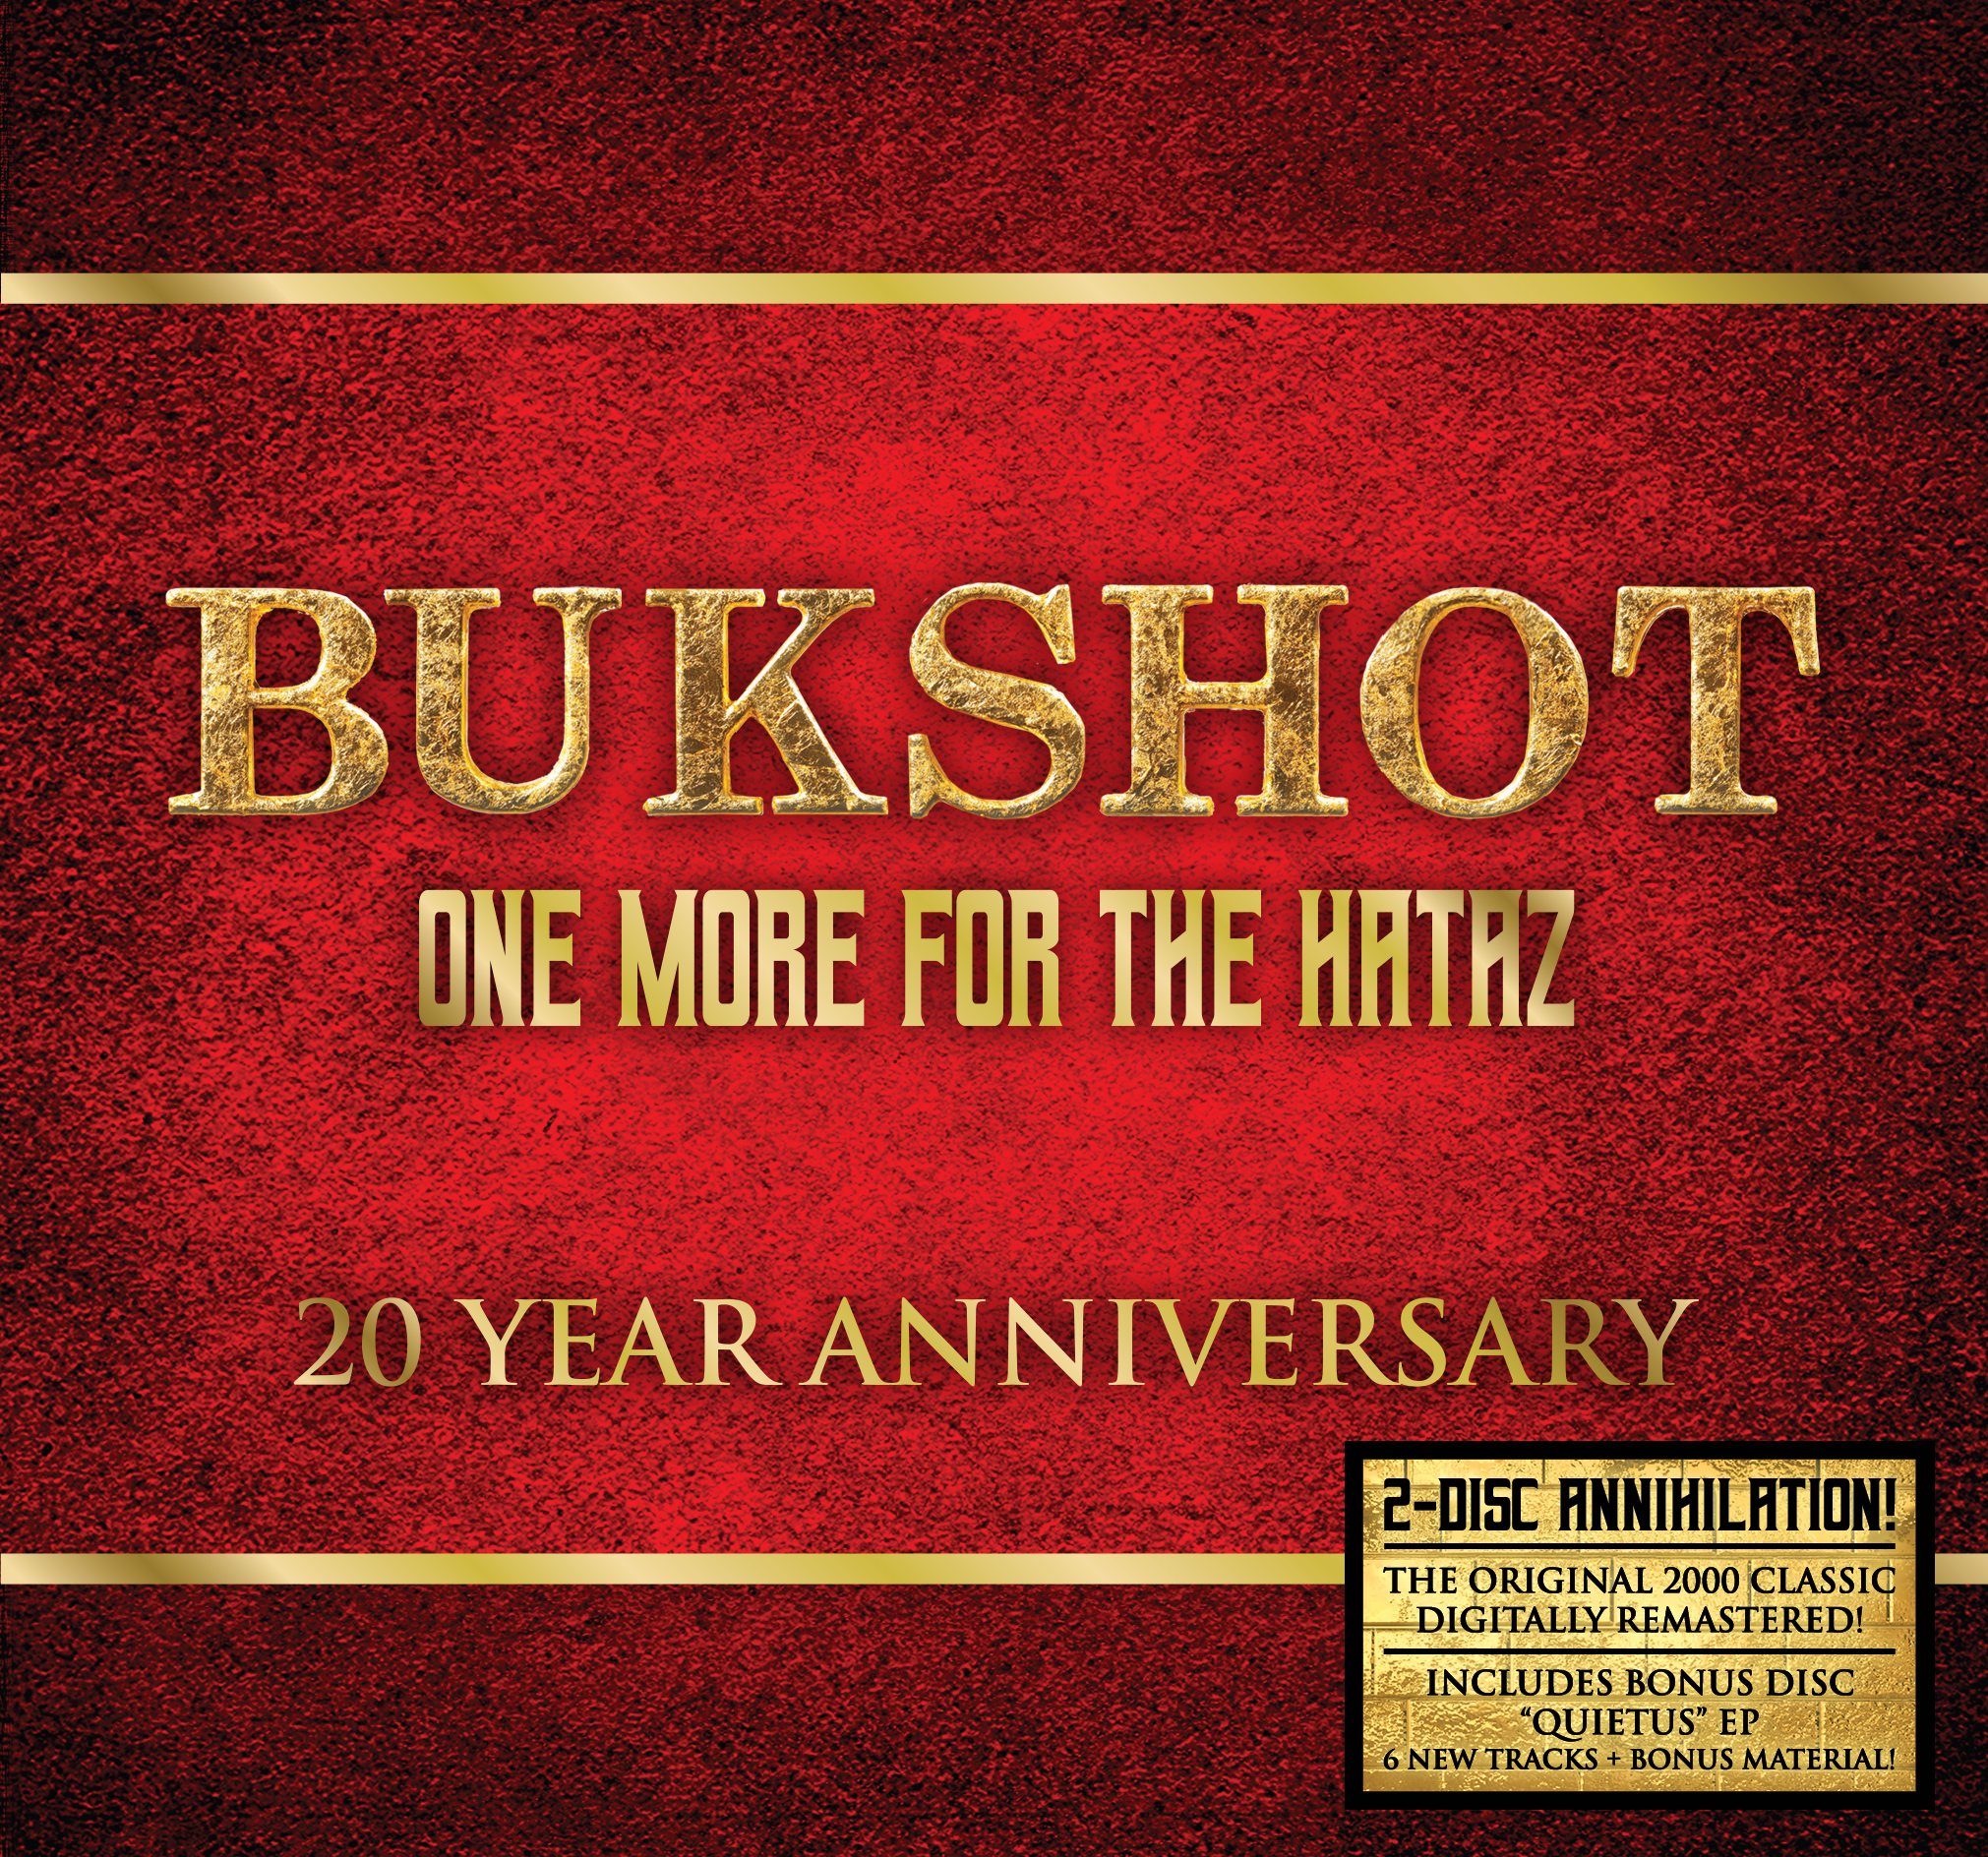 "Bukshot ""One More For The Hataz"" 20 Year Anniversary! (2 Disc Set + Autographed 12″ Flat)"